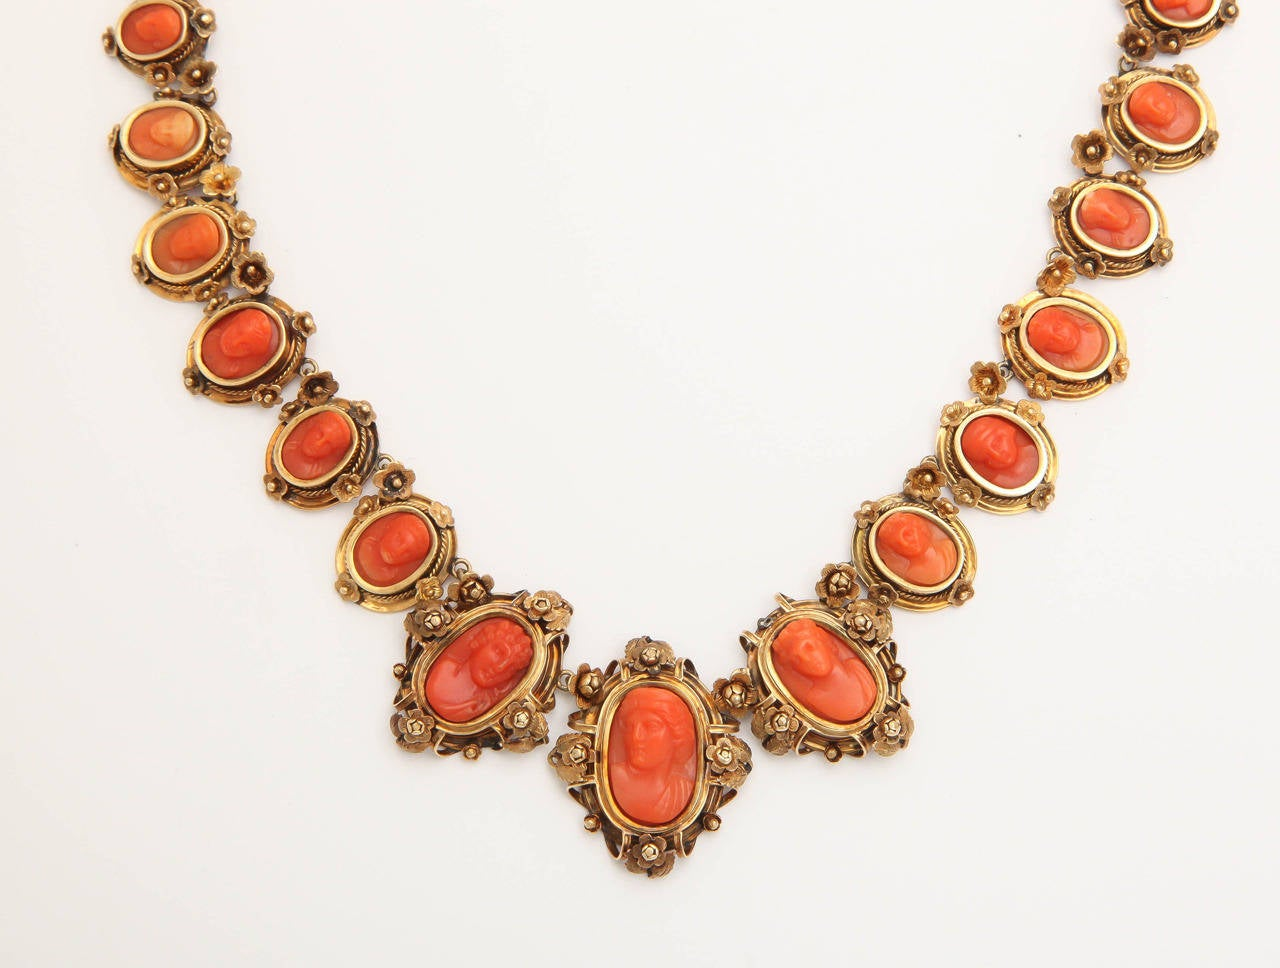 1870s Carved Coral Gold Link Necklace In Good Condition For Sale In New York, NY